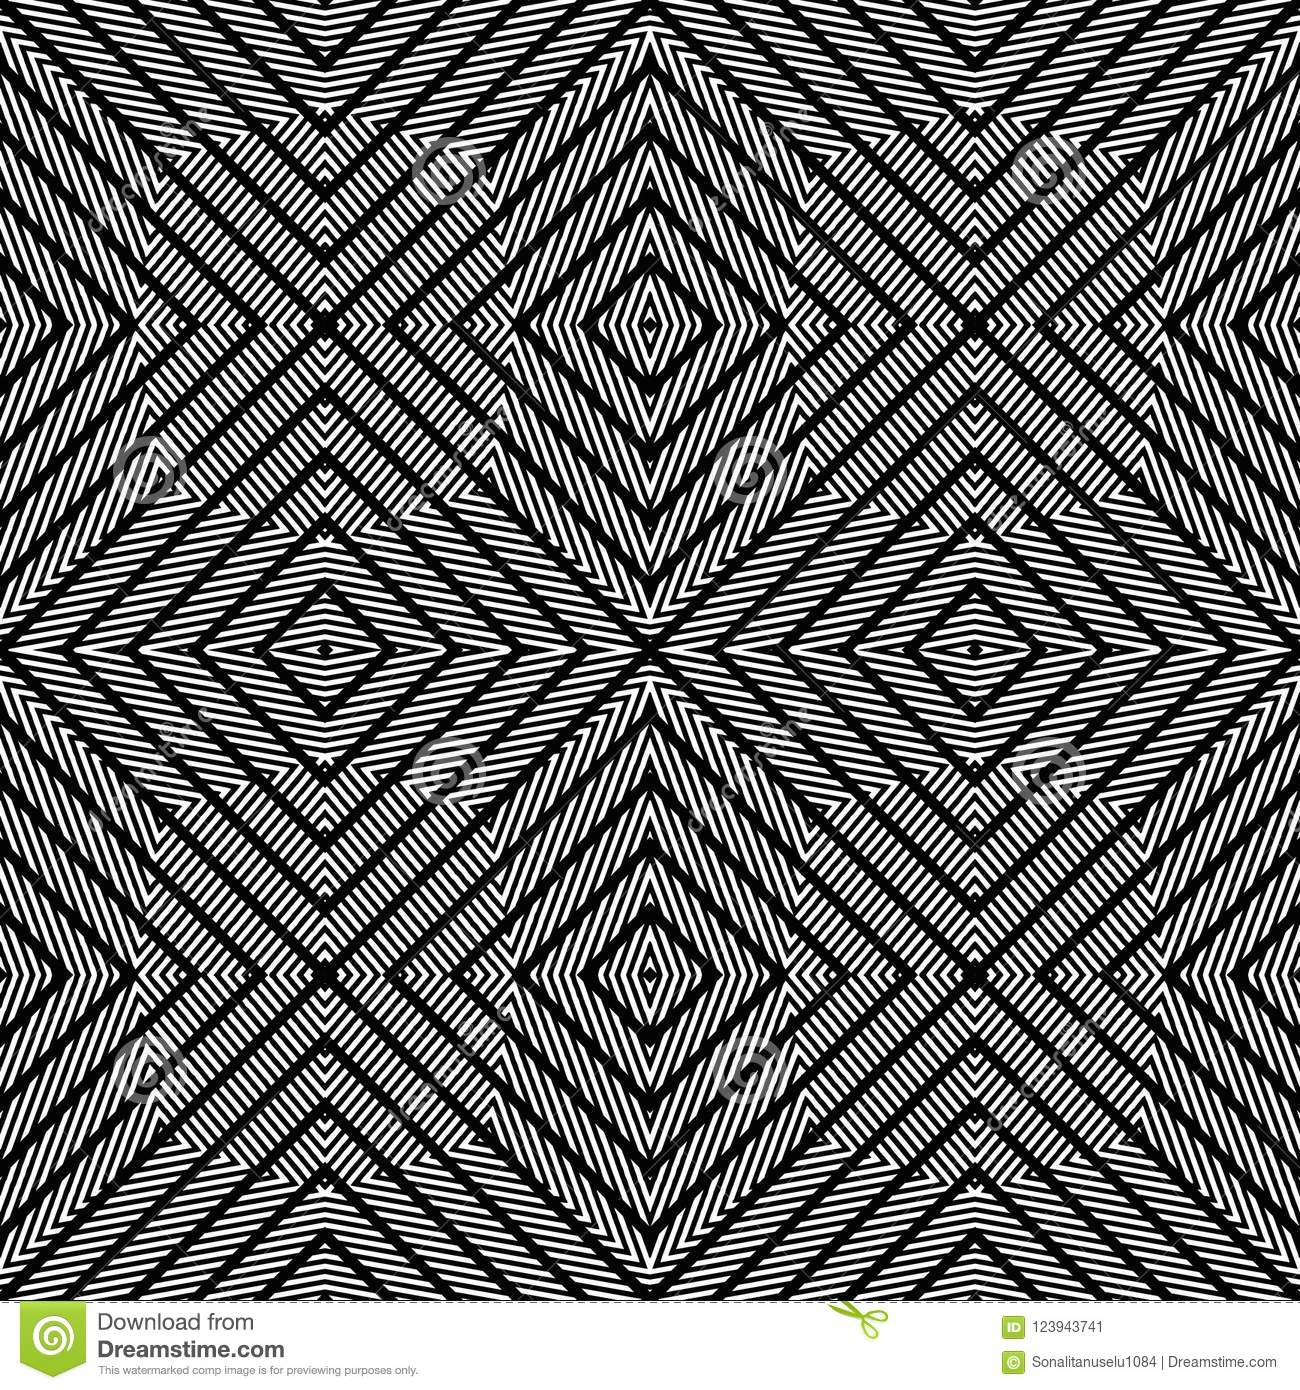 Vector Seamless Diamond Lines Pattern Black And White Abstract Background Wallpaper Vector Illustration Stock Vector Illustration Of Lighting Head 123943741